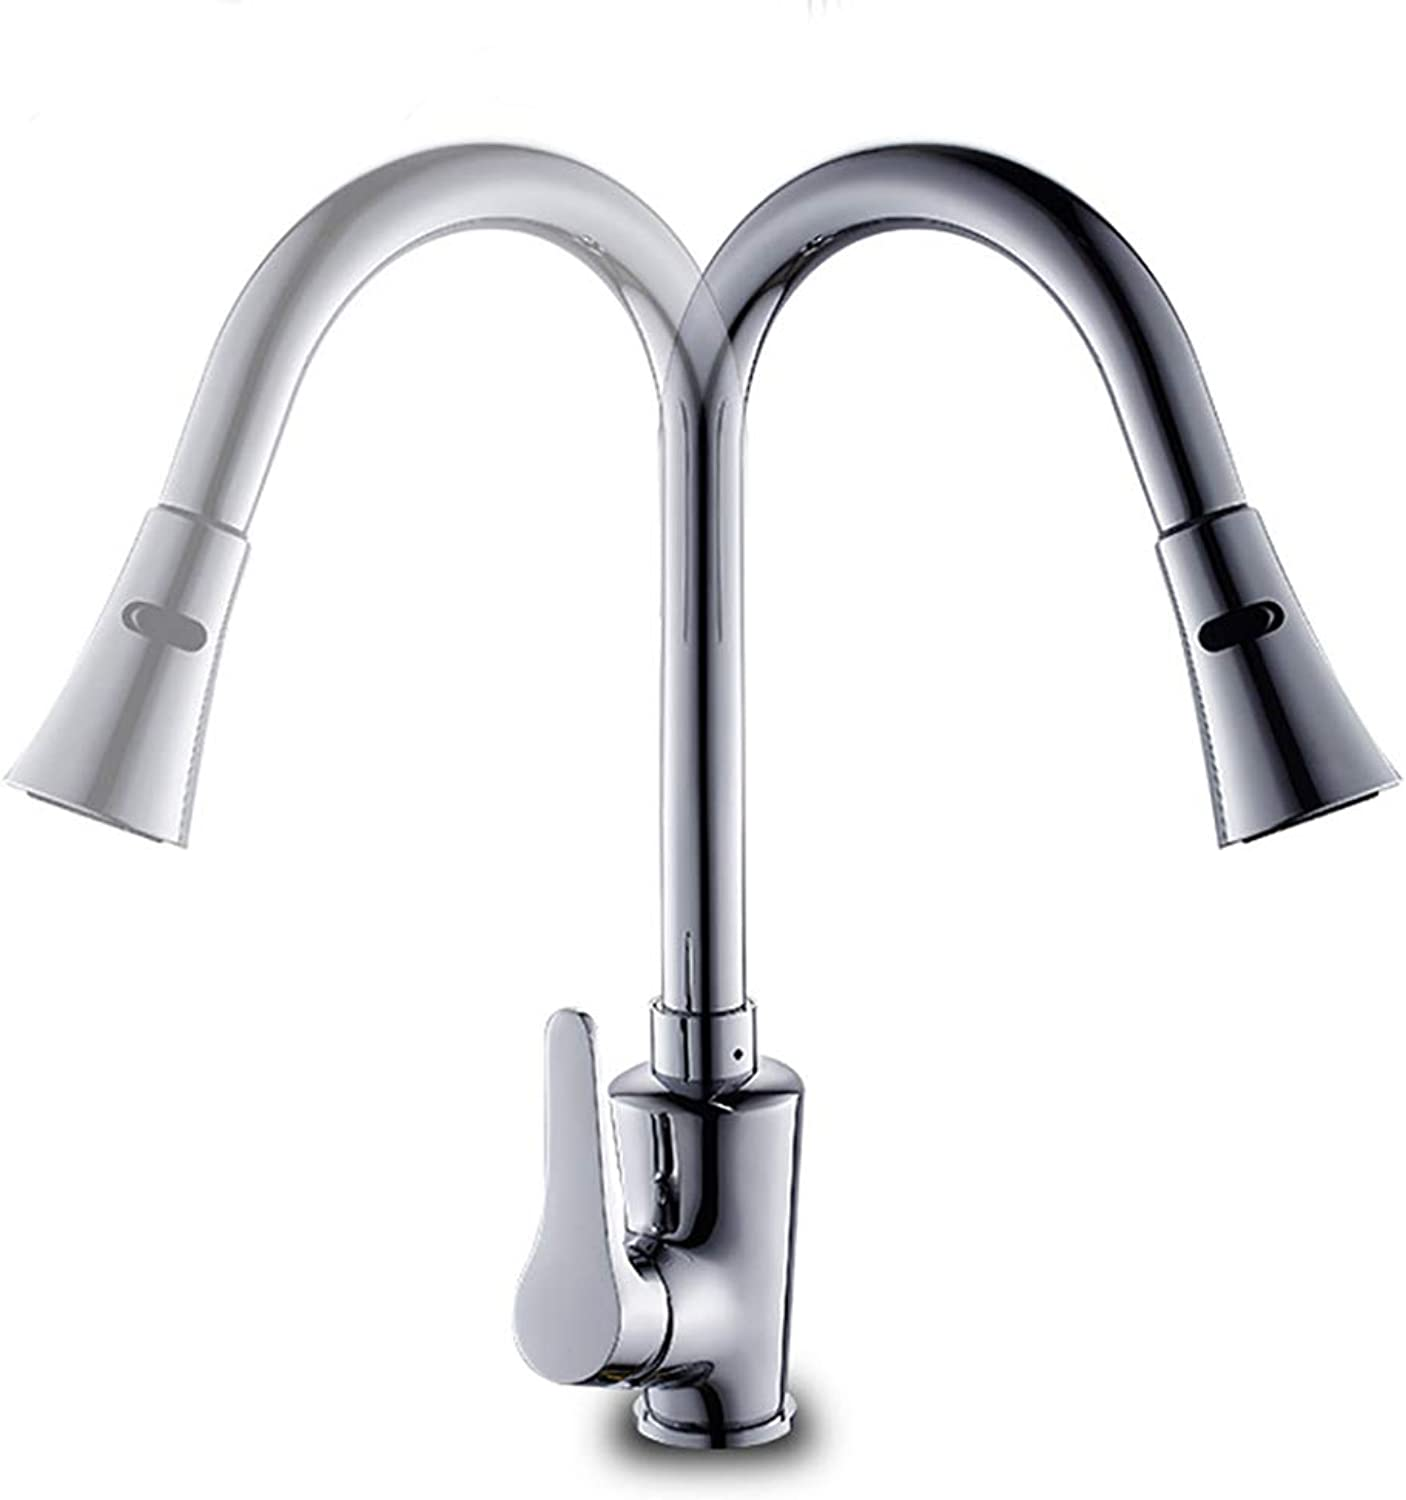 BILLY'S HOME Kitchen faucet, Contemporary Pull Down Kitchen Faucet with Ceramic Valve One Hole Single Handle One Hole 360° redating Spout And Easy Inssizetion